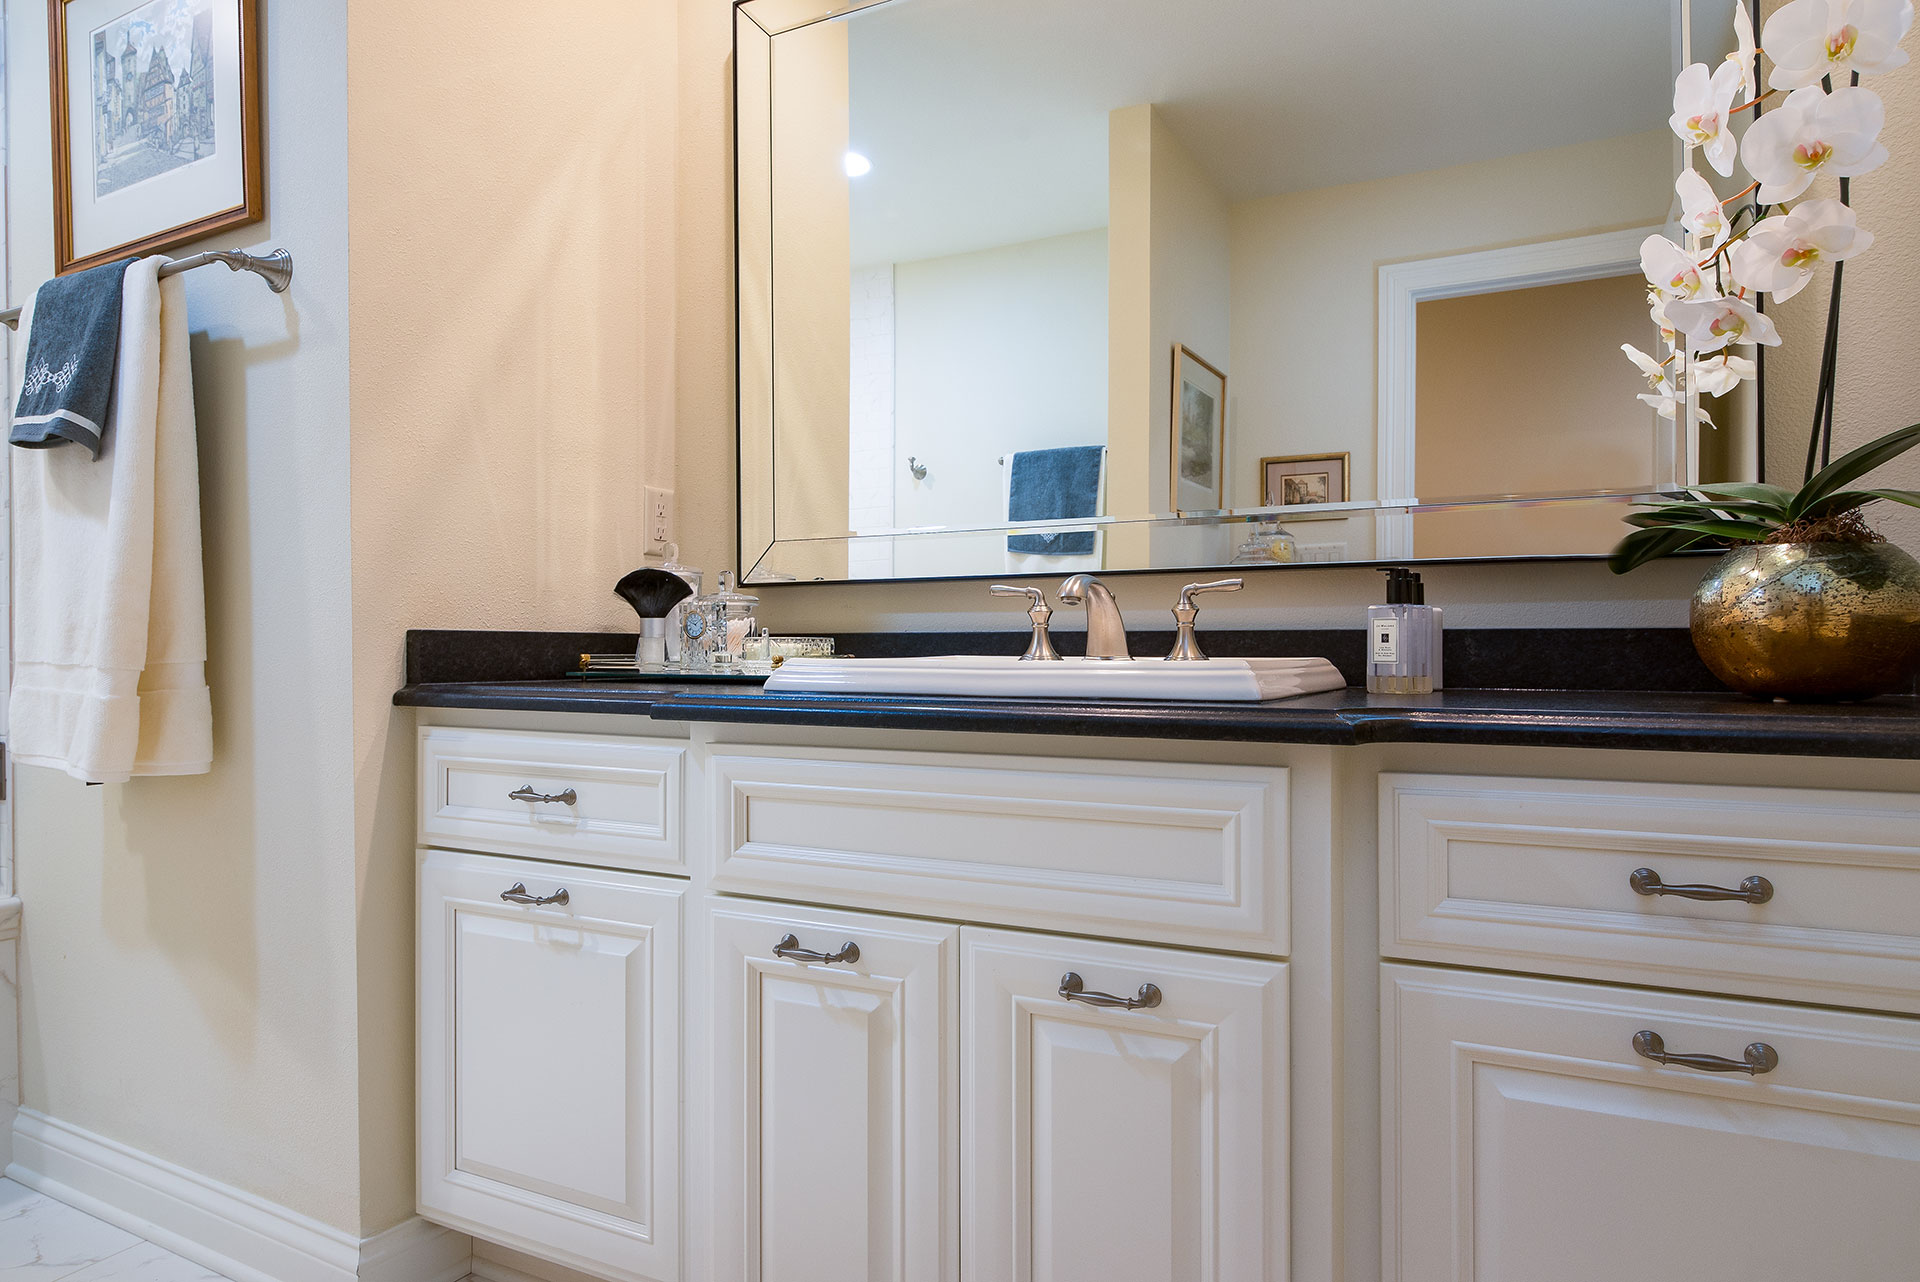 White Cabinets and Black Granite Countertops in a Bathroom